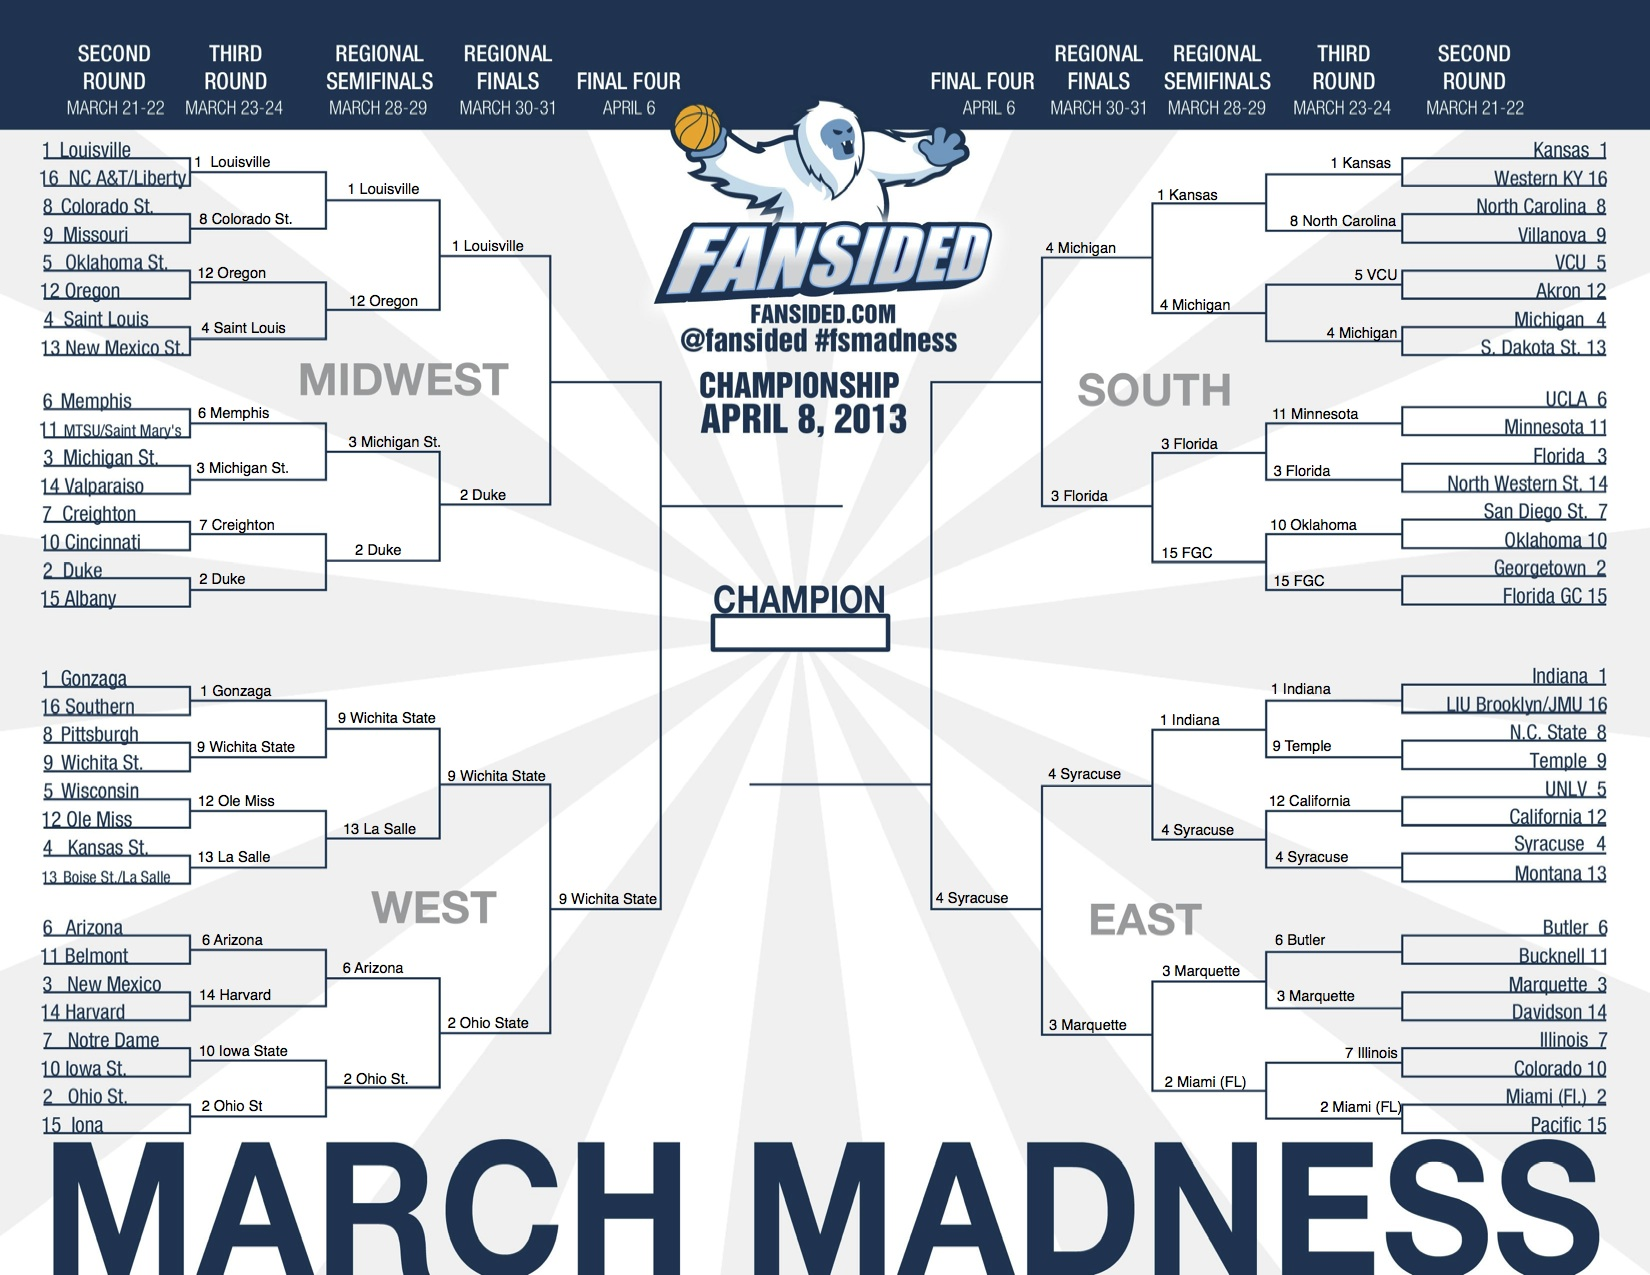 photo regarding Acc Printable Bracket named Past 4 2013 Bracket Prices of the Working day